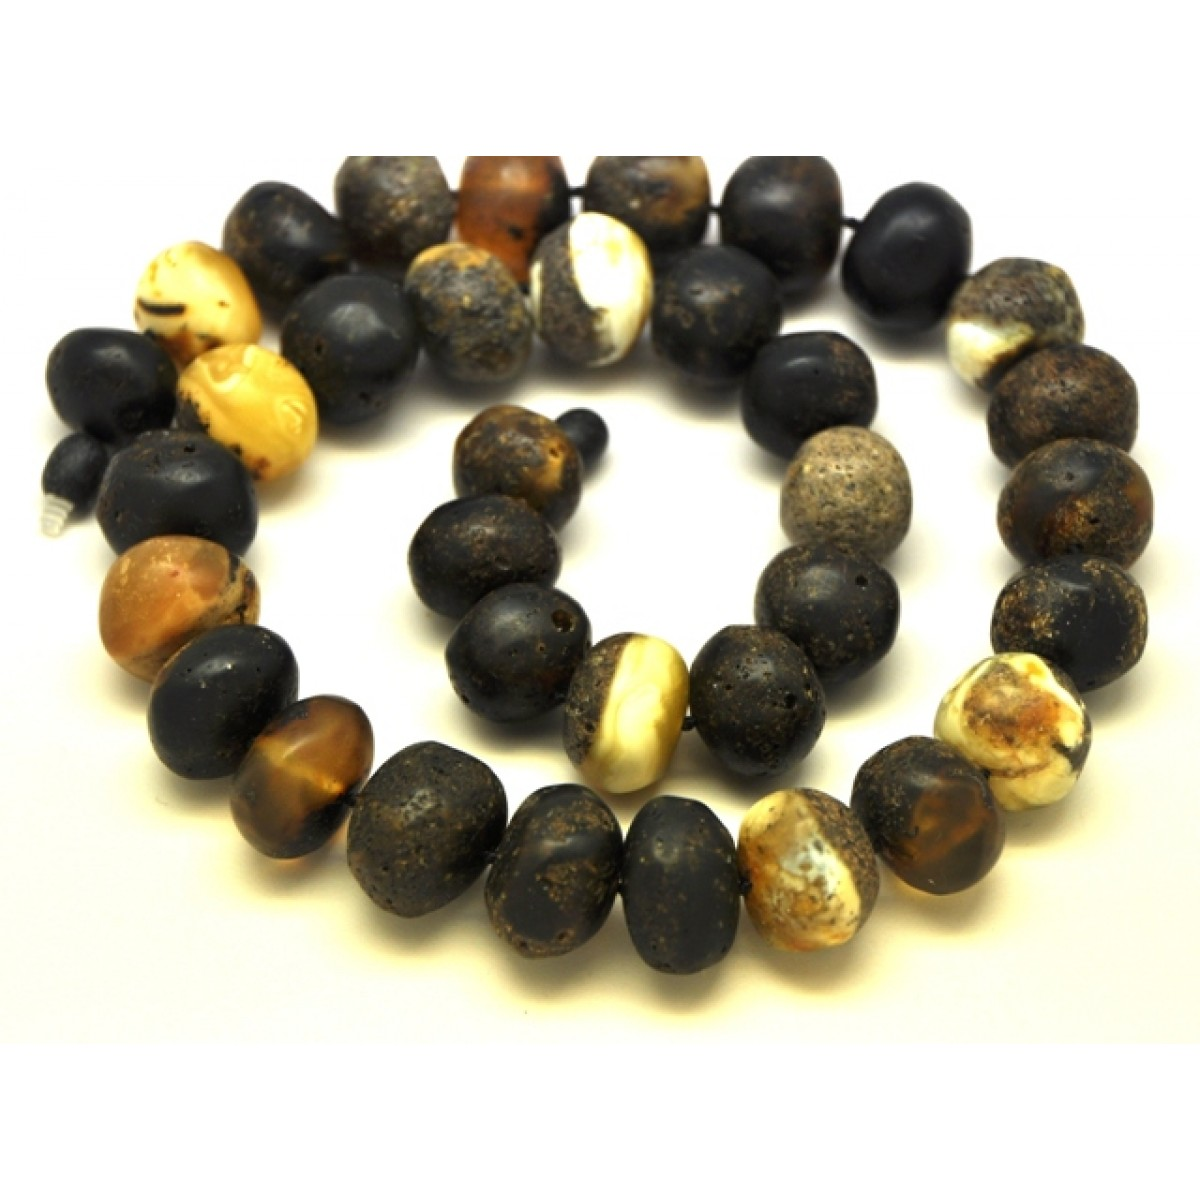 Raw healing baroque beads Baltic amber necklace